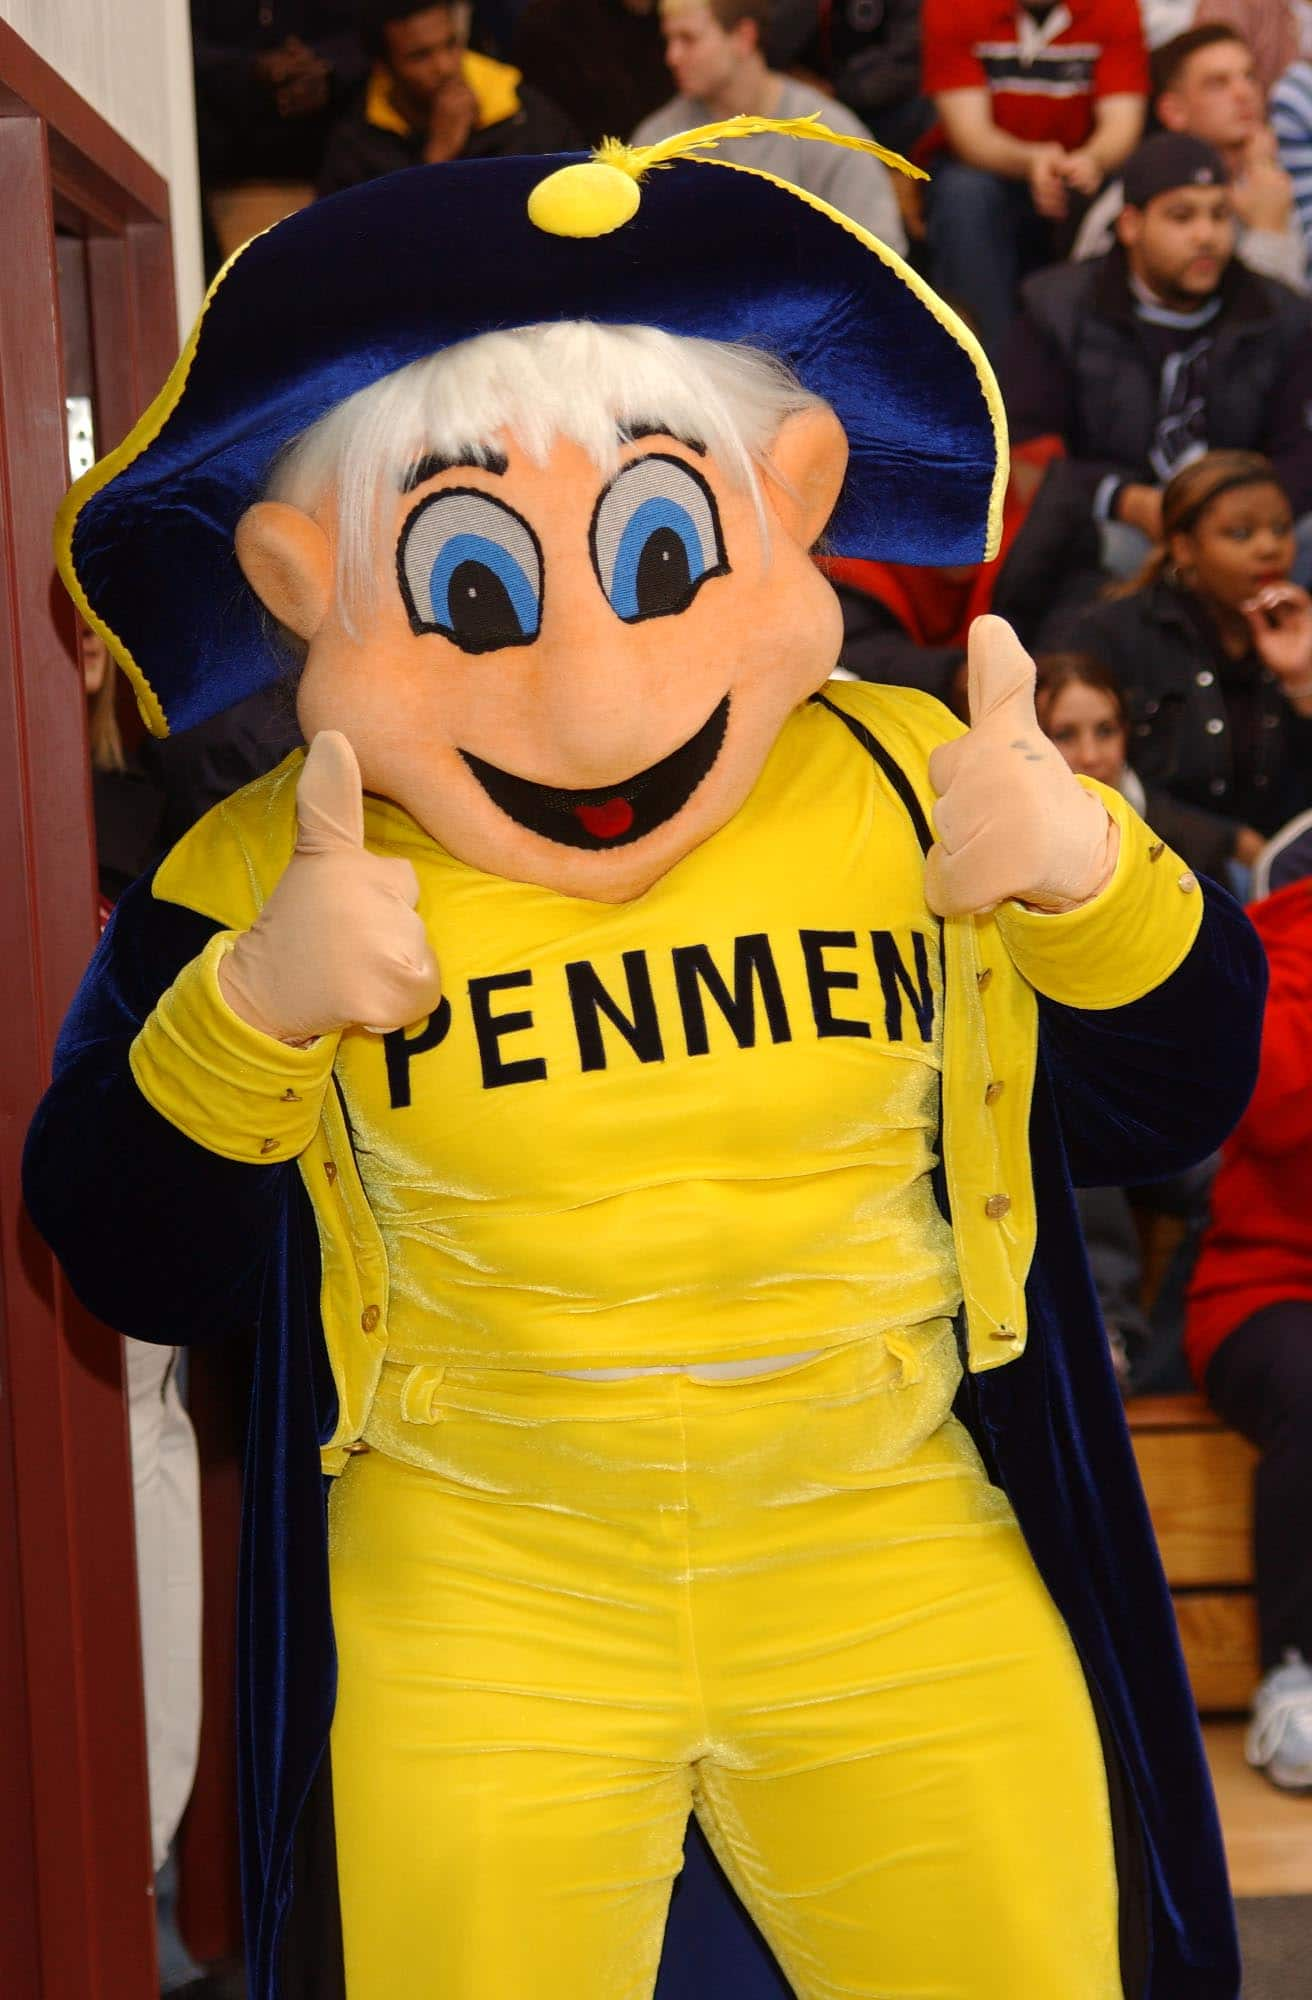 The Penmen and The Quill SNHU Mascot Combines Higher Ed and History Gallery Image 4